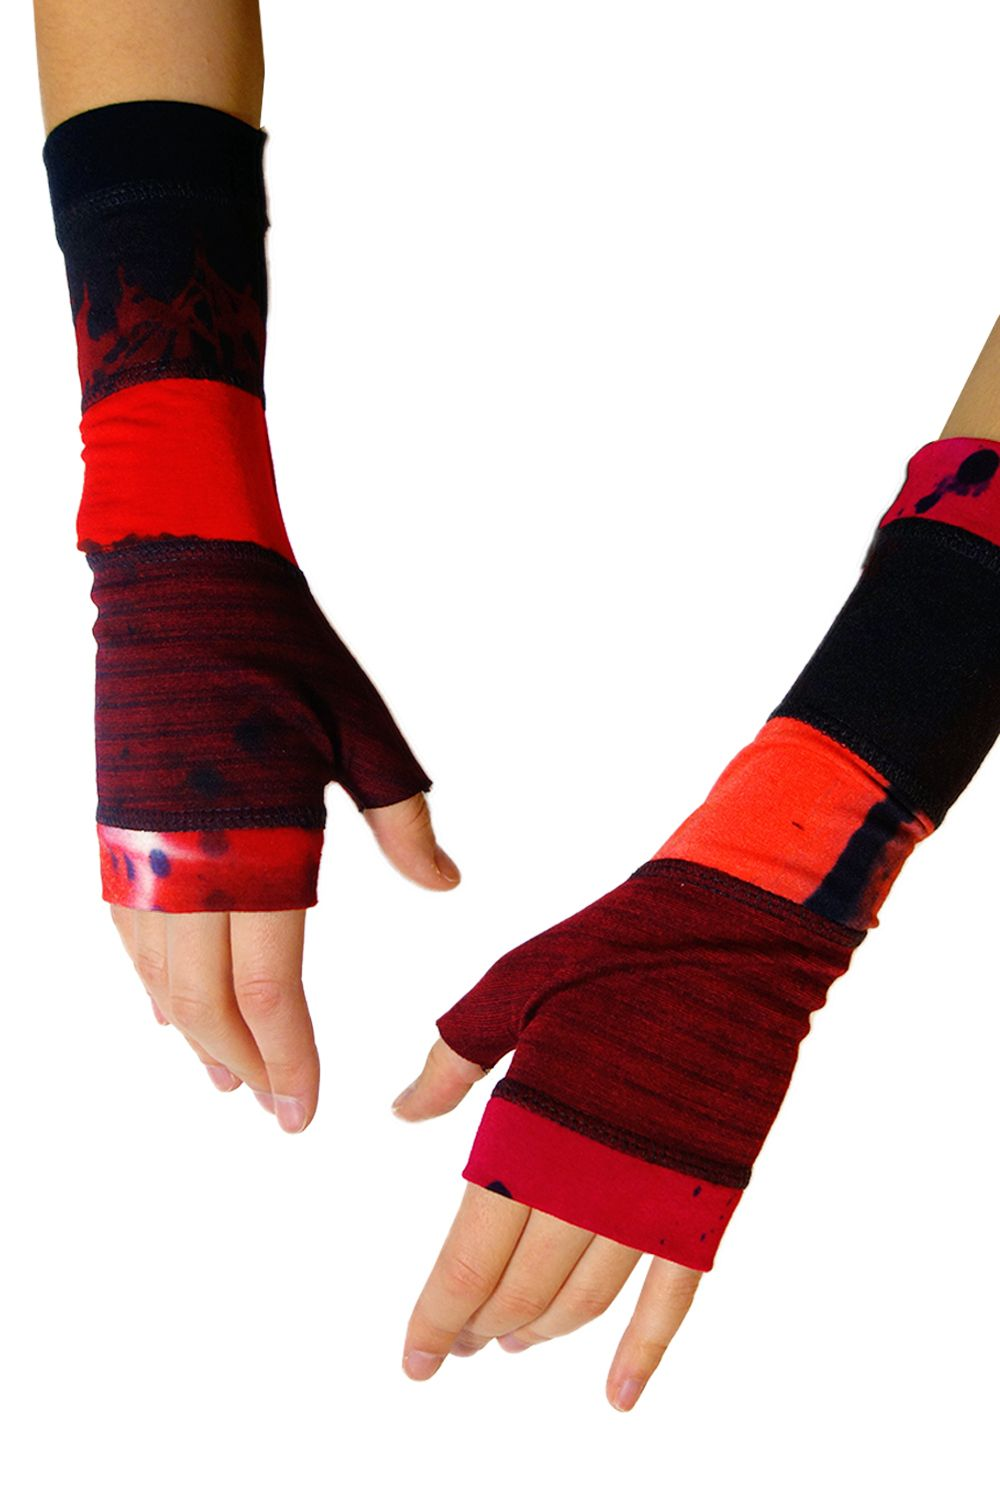 Hand dyed, beautiful fingerless gloves by Art of Cloth. Each pair and each glove is a unique piece of wearable art.